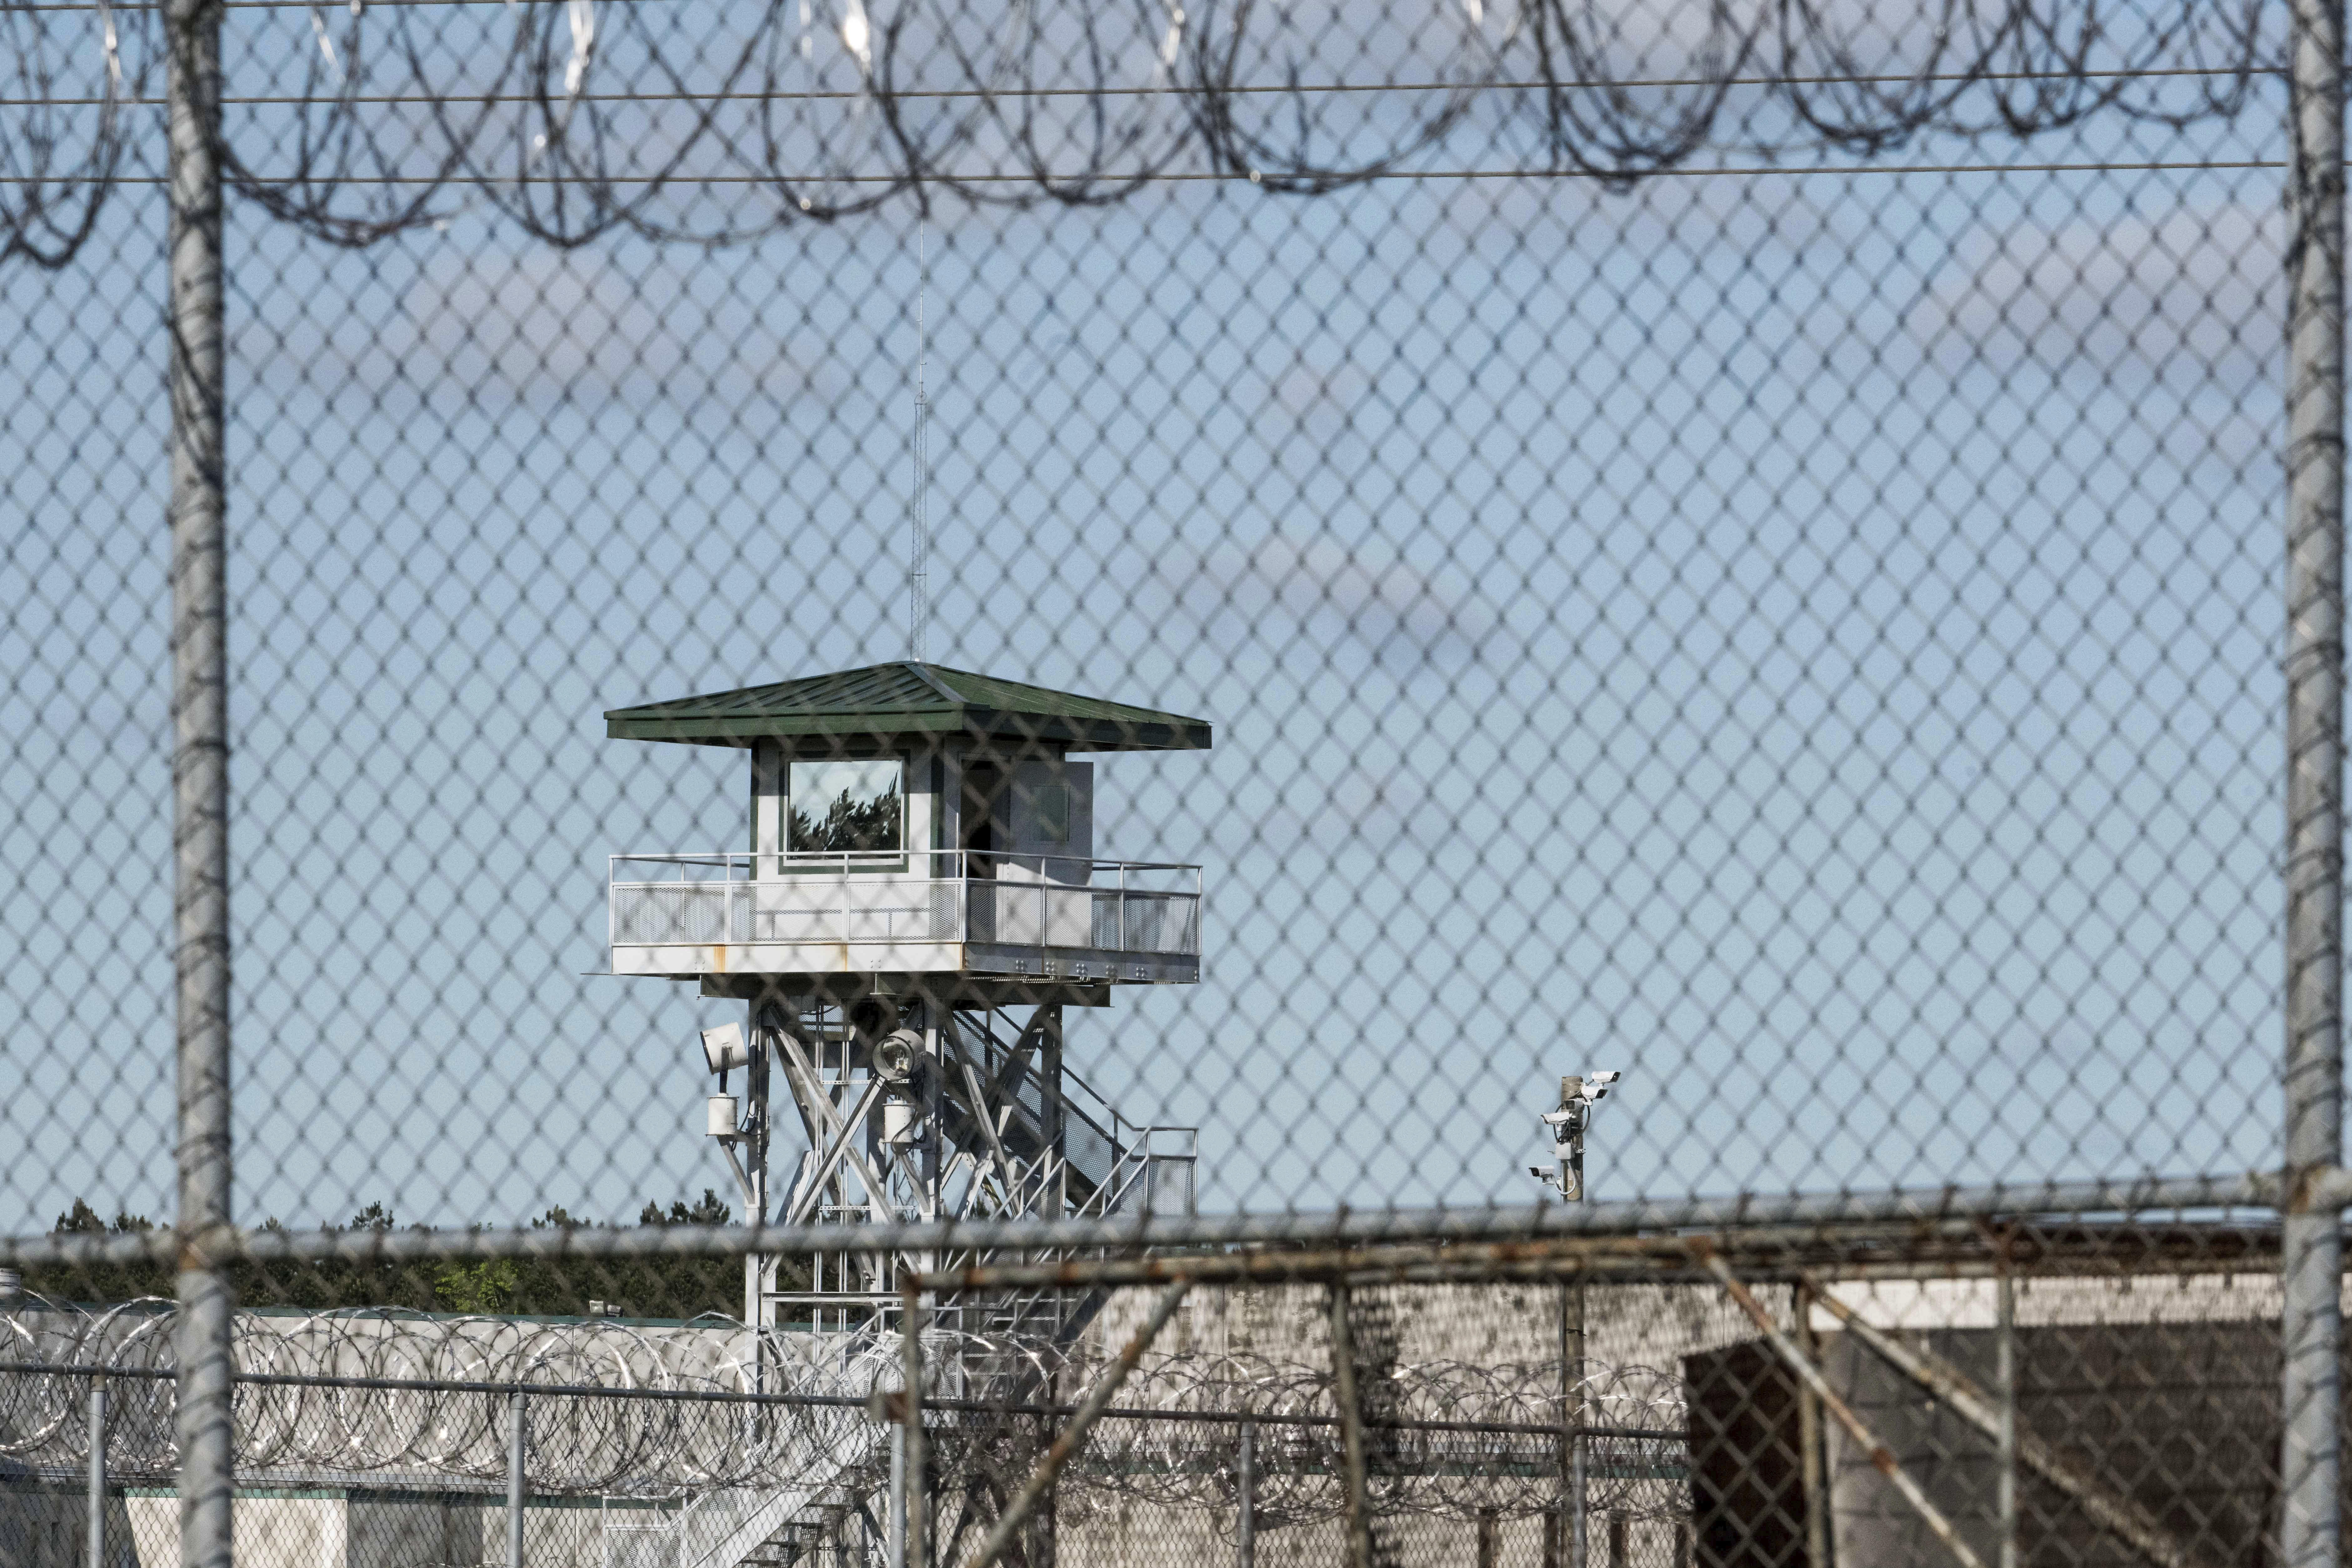 Update on deadly prison riot in South Carolina